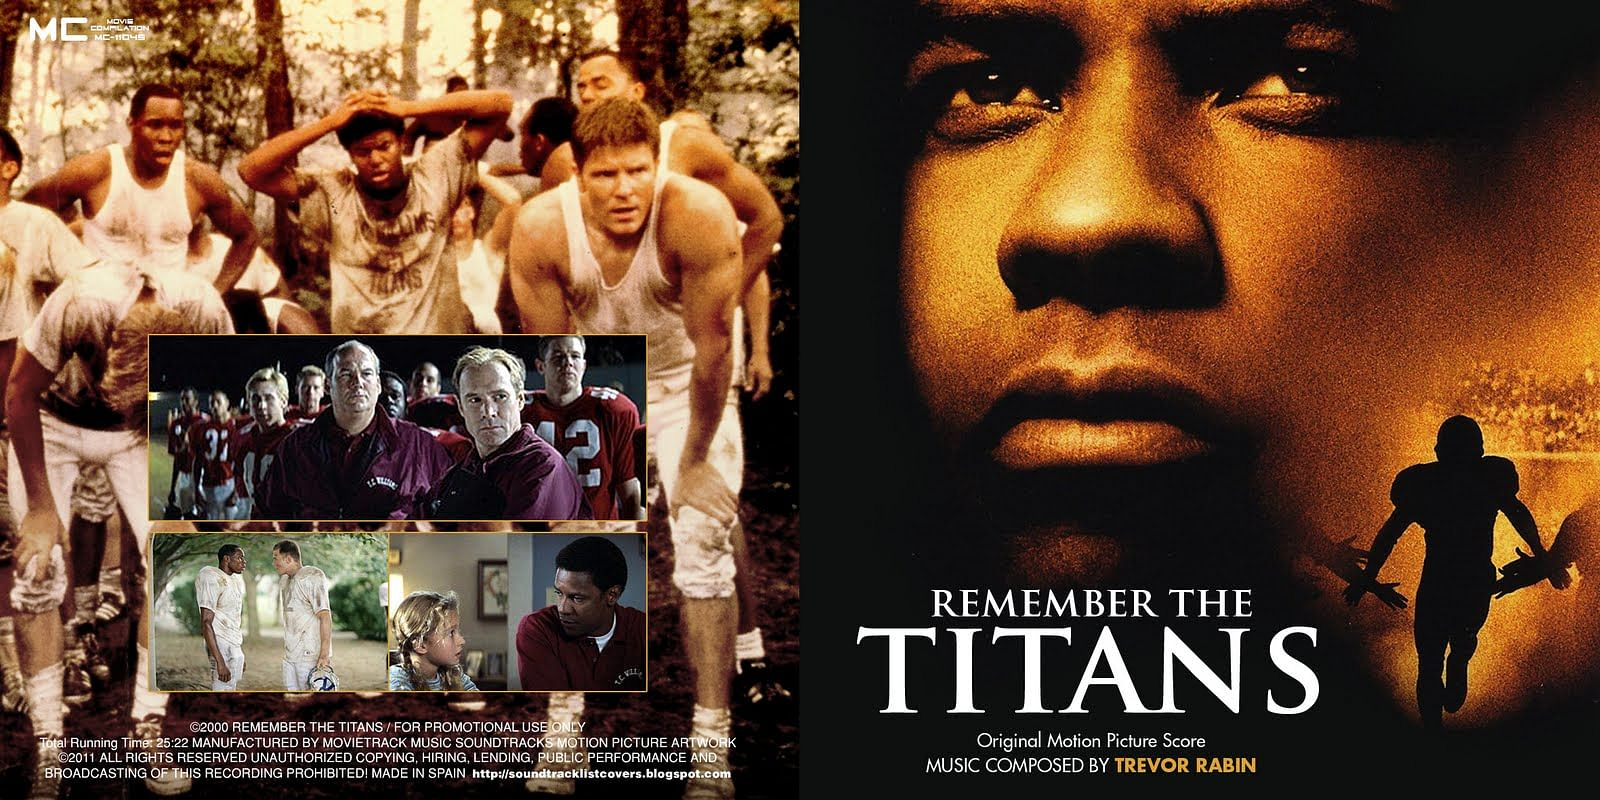 remember the titans life and its It forbids you to remember that they squeeze all the life they seem to think they deserve endless credit for making remember the titans, with its.